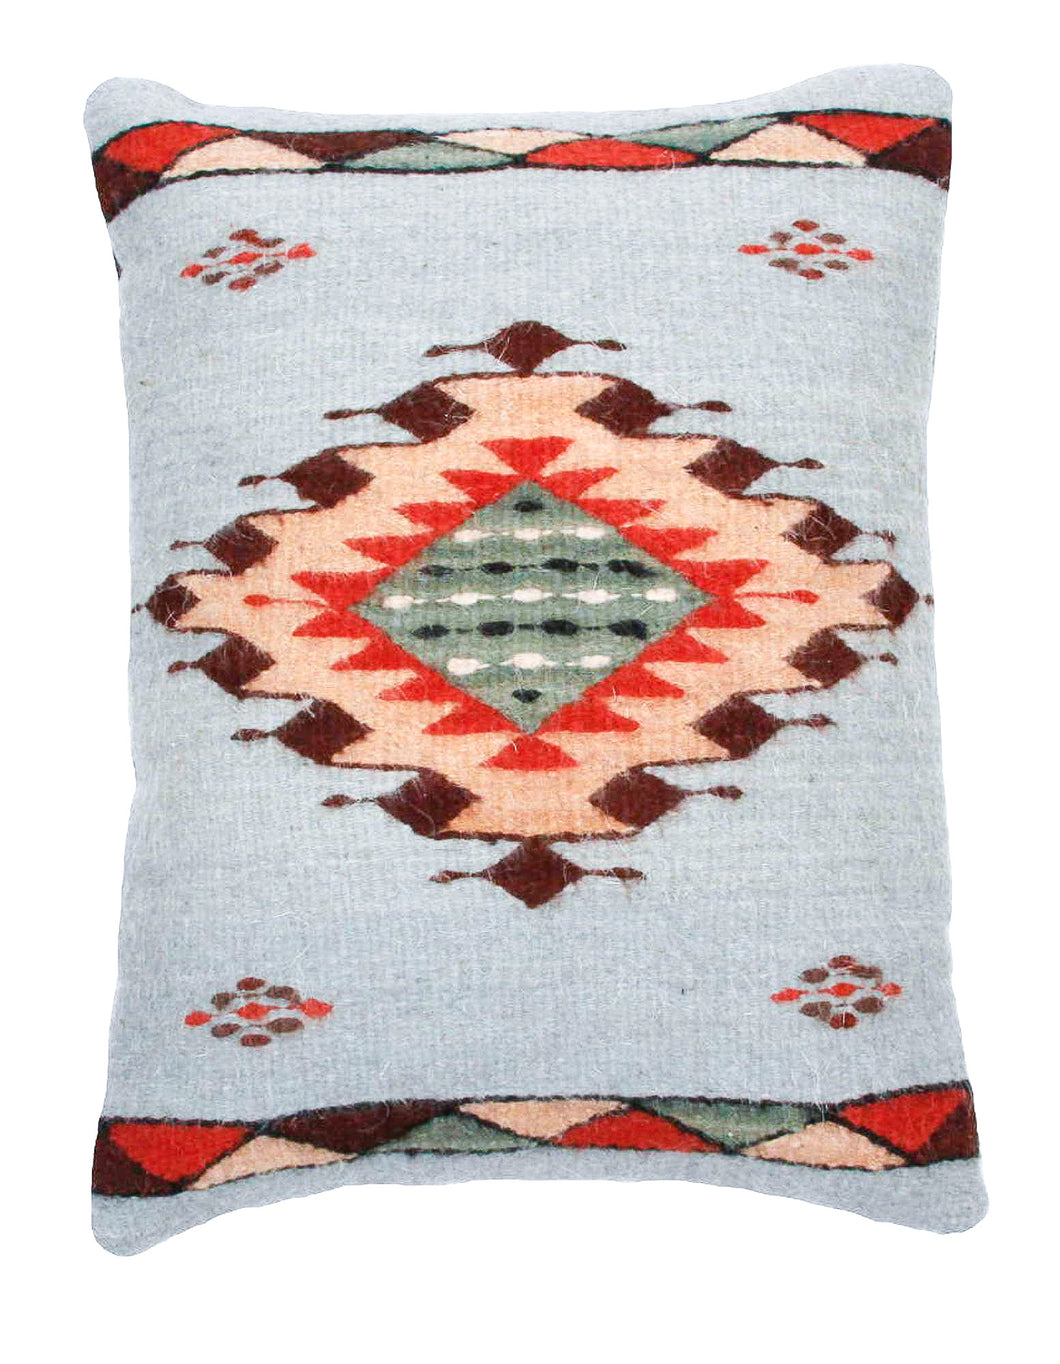 Handwoven Zapotec Indian Pillow - Meli's Star Wool Oaxacan Textile